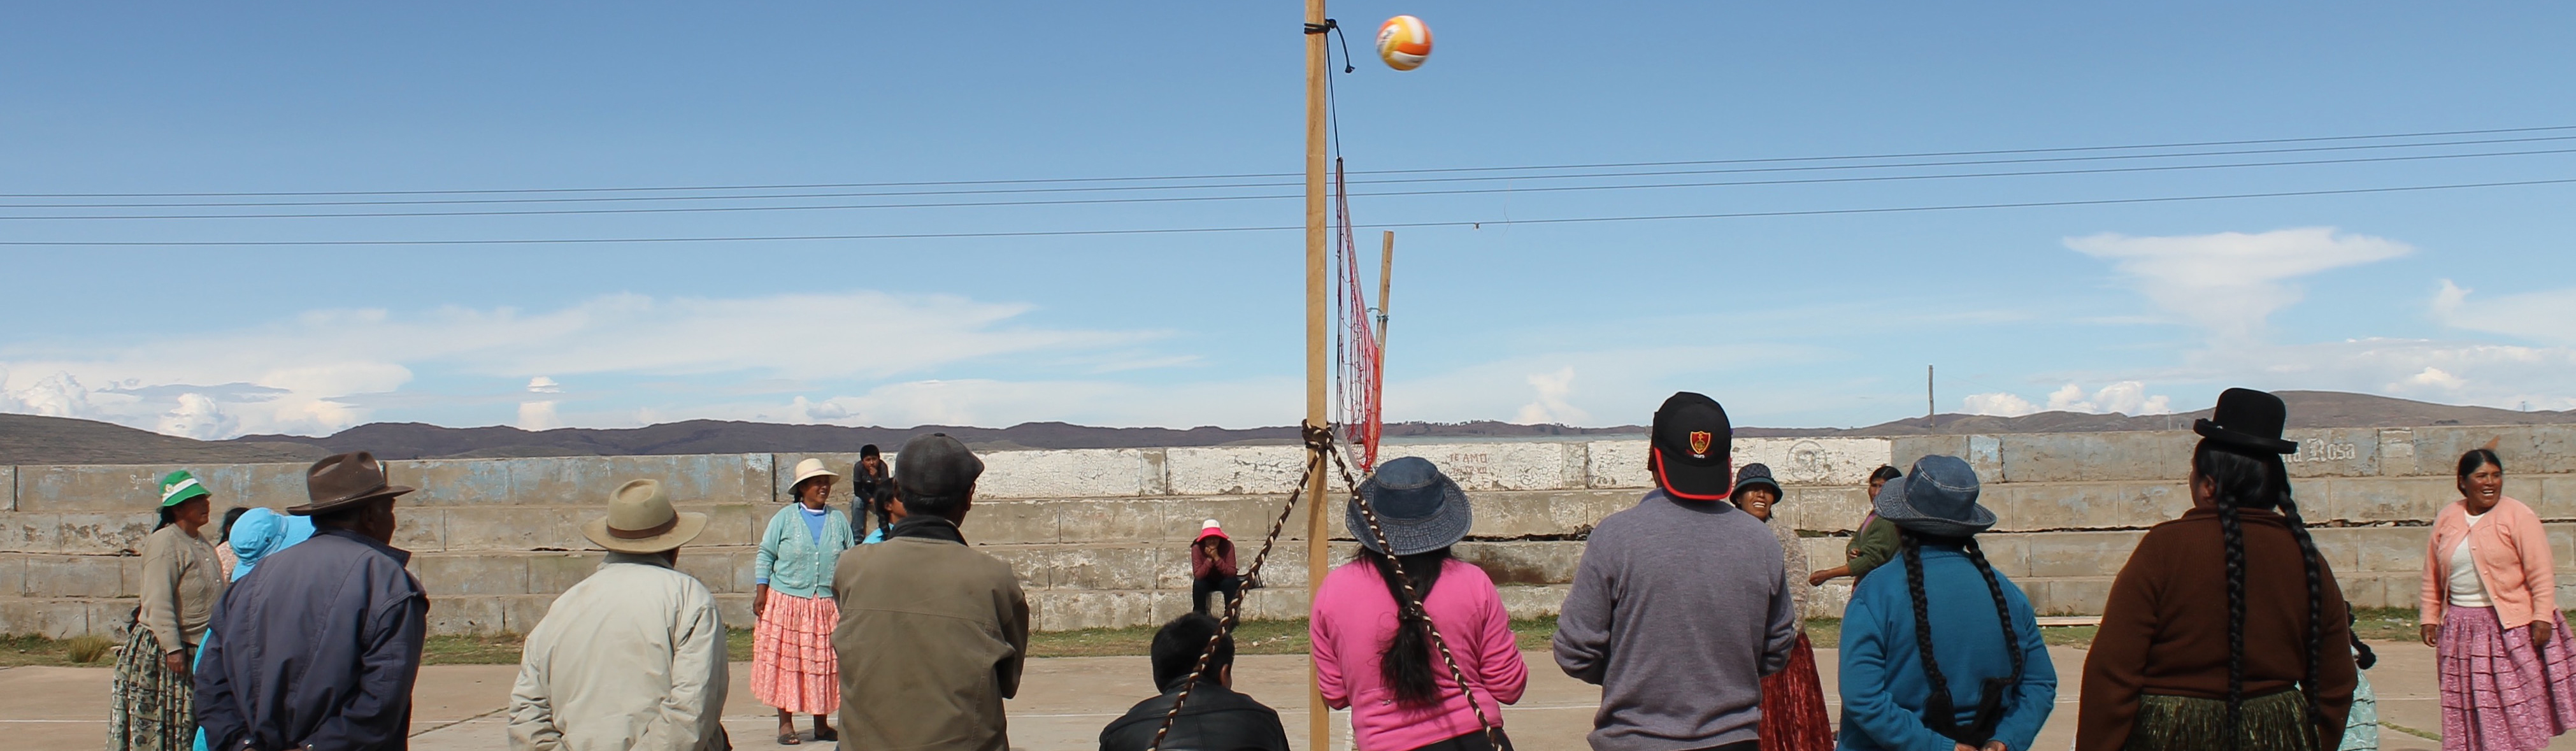 Spectating in the Southern Peruvian Andes (Corinna Howland, 2017)